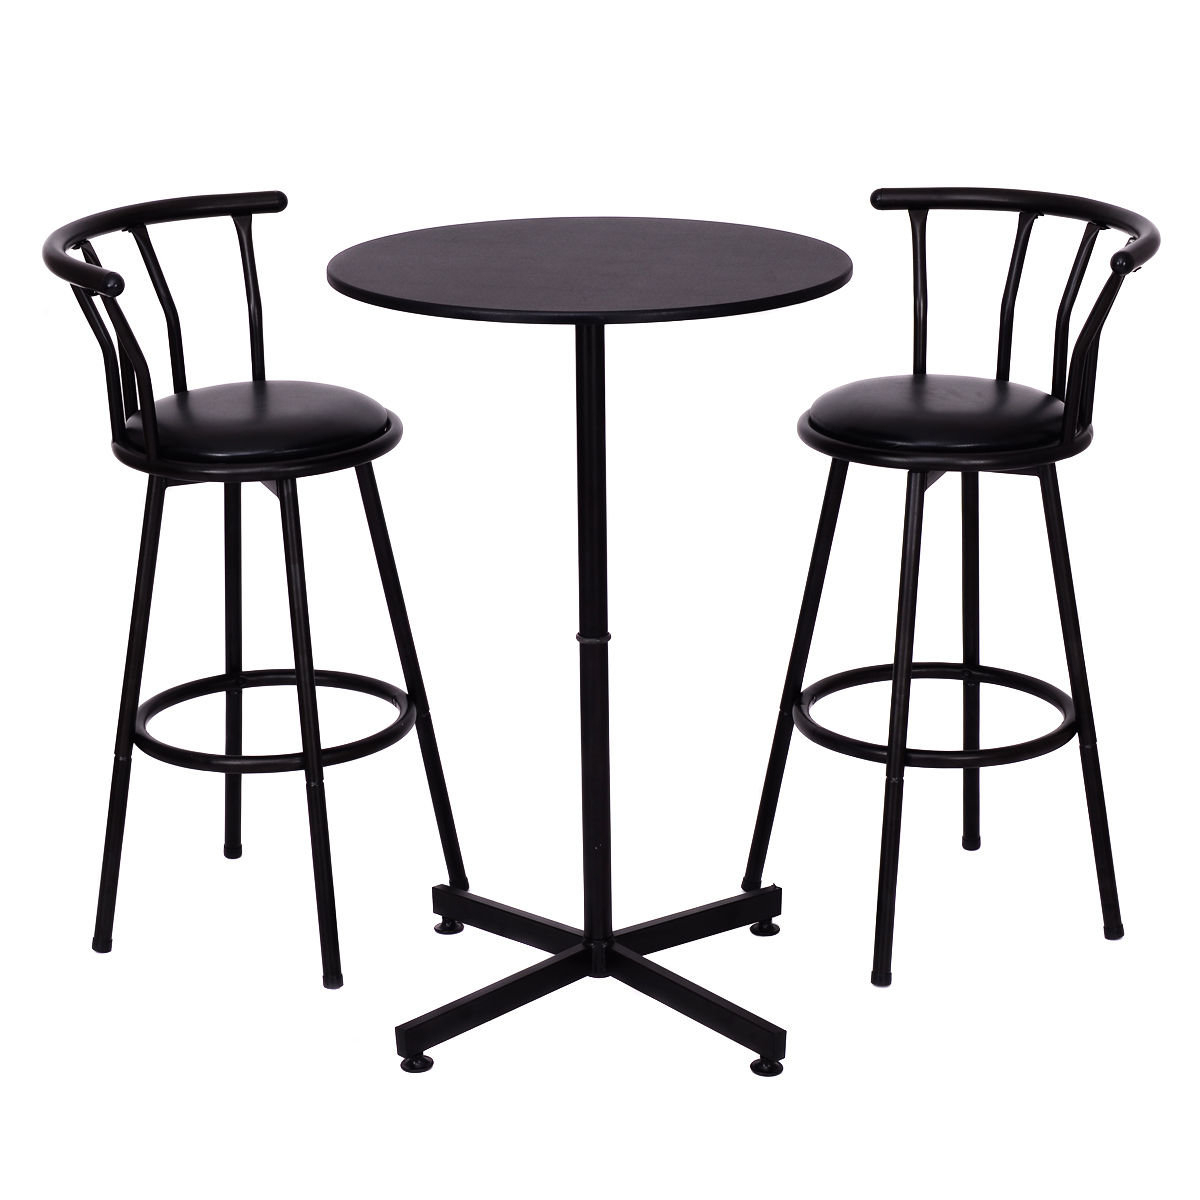 Caseville 3 Piece Pub Table Set Intended For Most Popular Saintcroix 3 Piece Dining Sets (View 7 of 20)